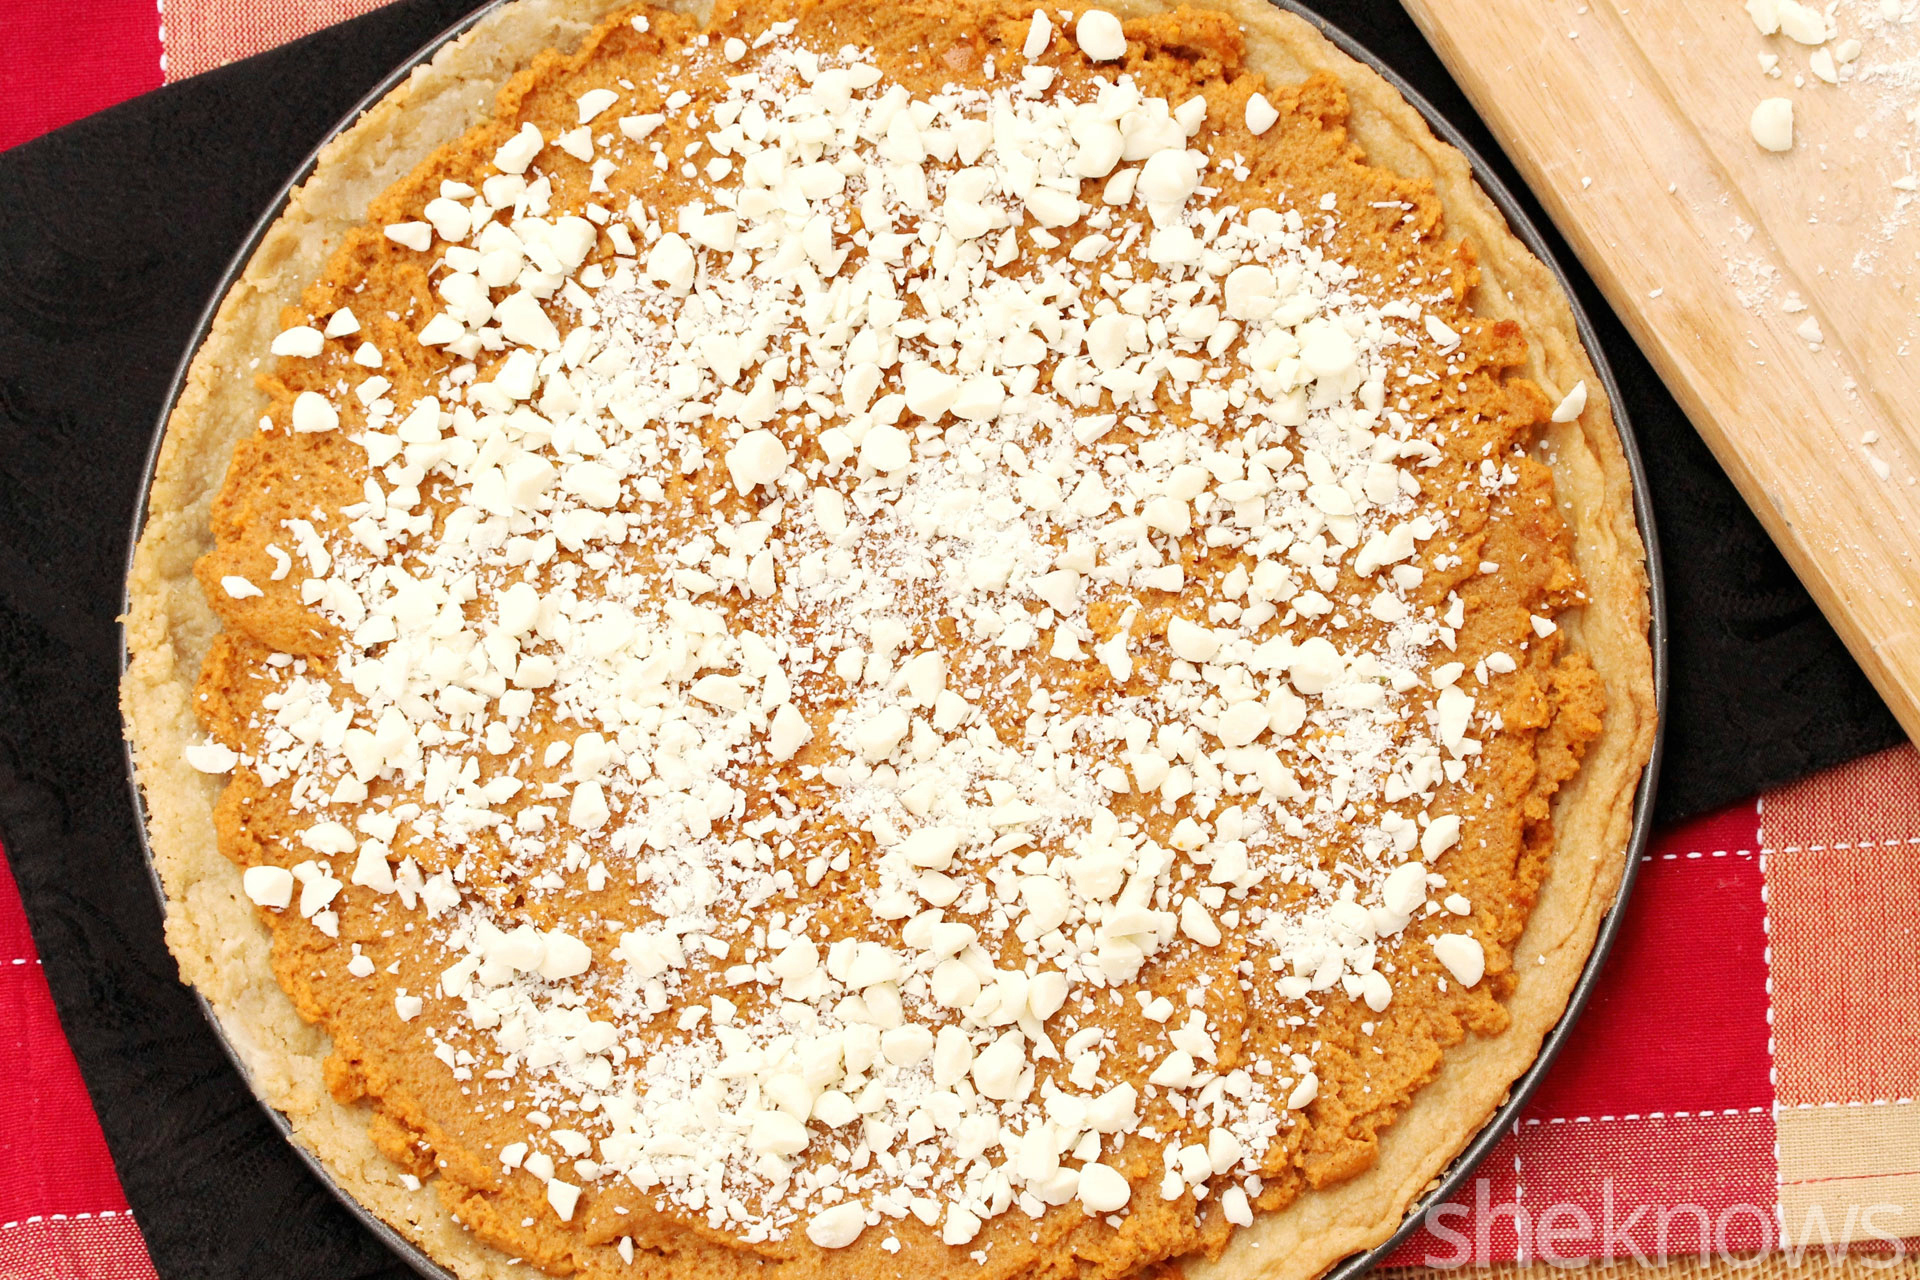 white-chocolate-chips-on-pizza